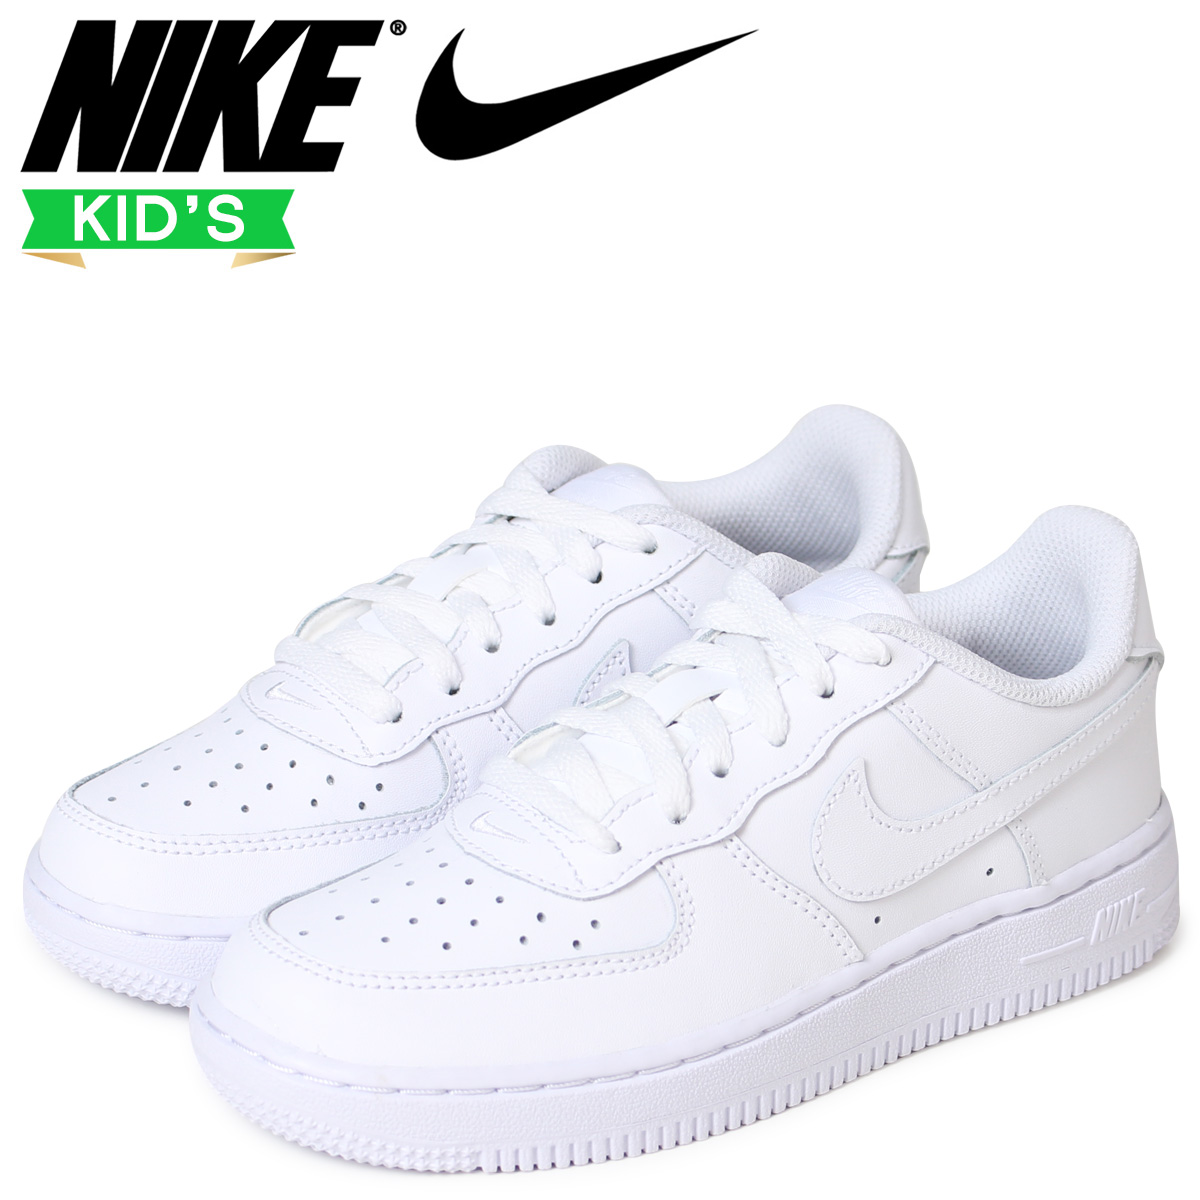 NIKE Nike air force 1 kids sneakers AIR FORCE 1 PS 314,193-117 white white